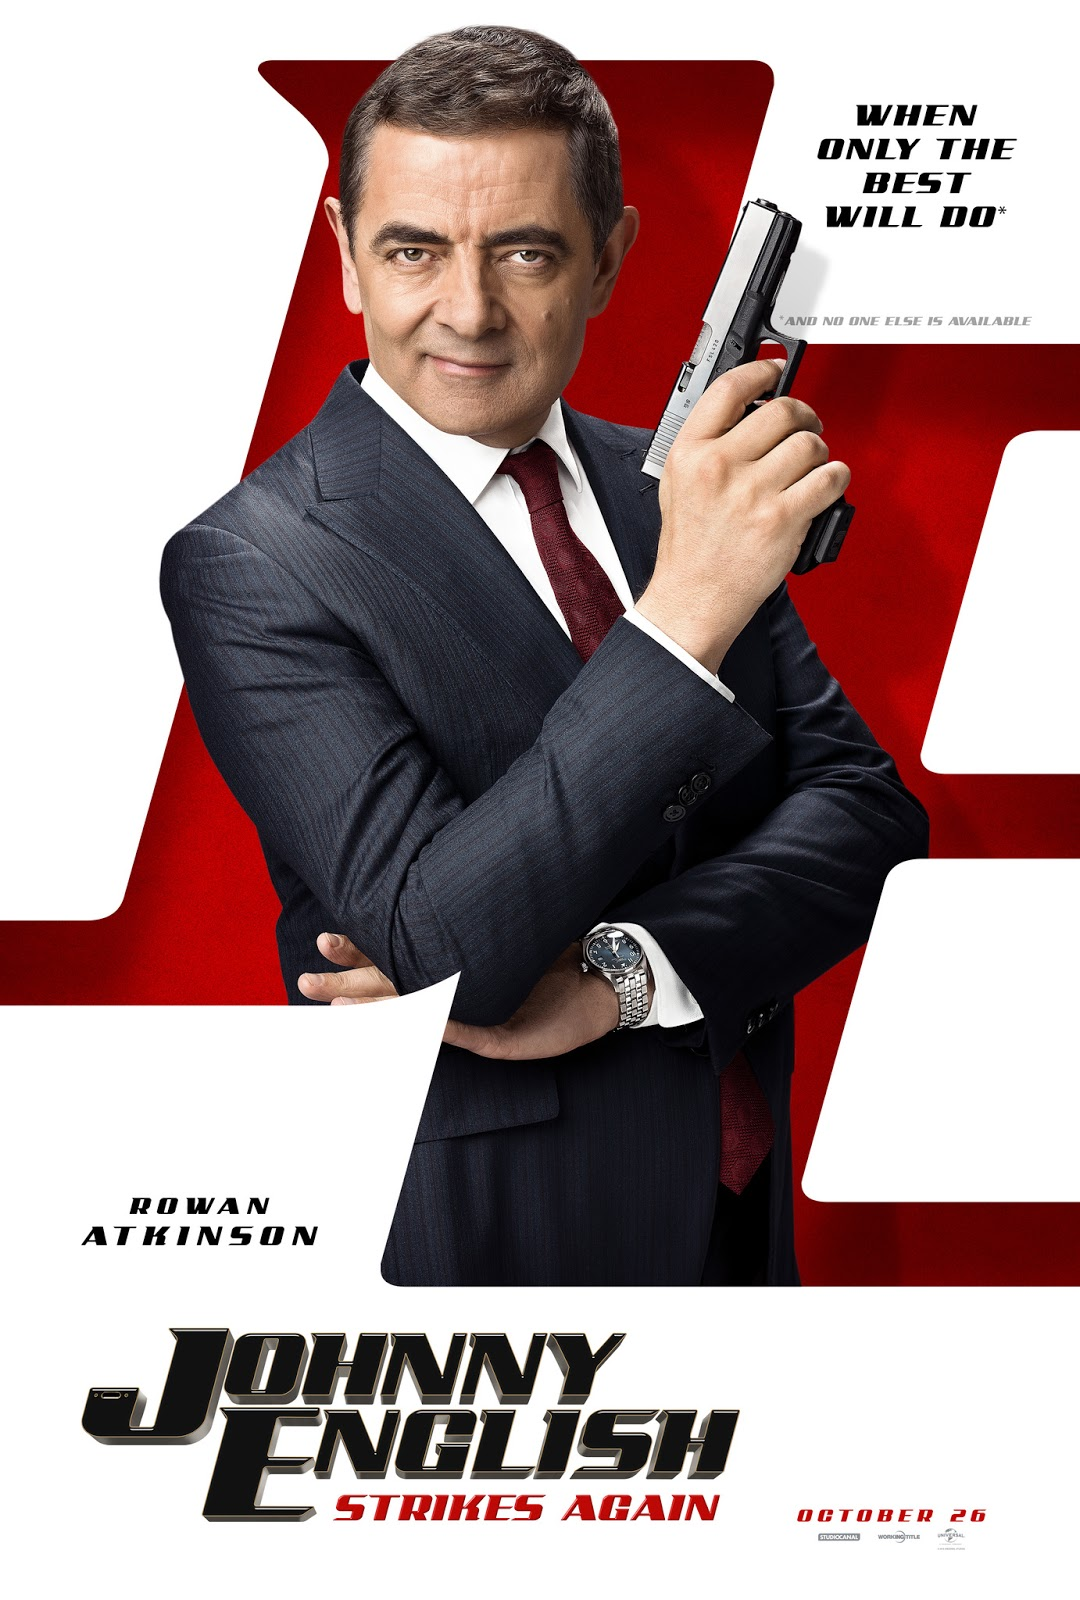 Johnny English 3 (2018) Full Movie Free Online